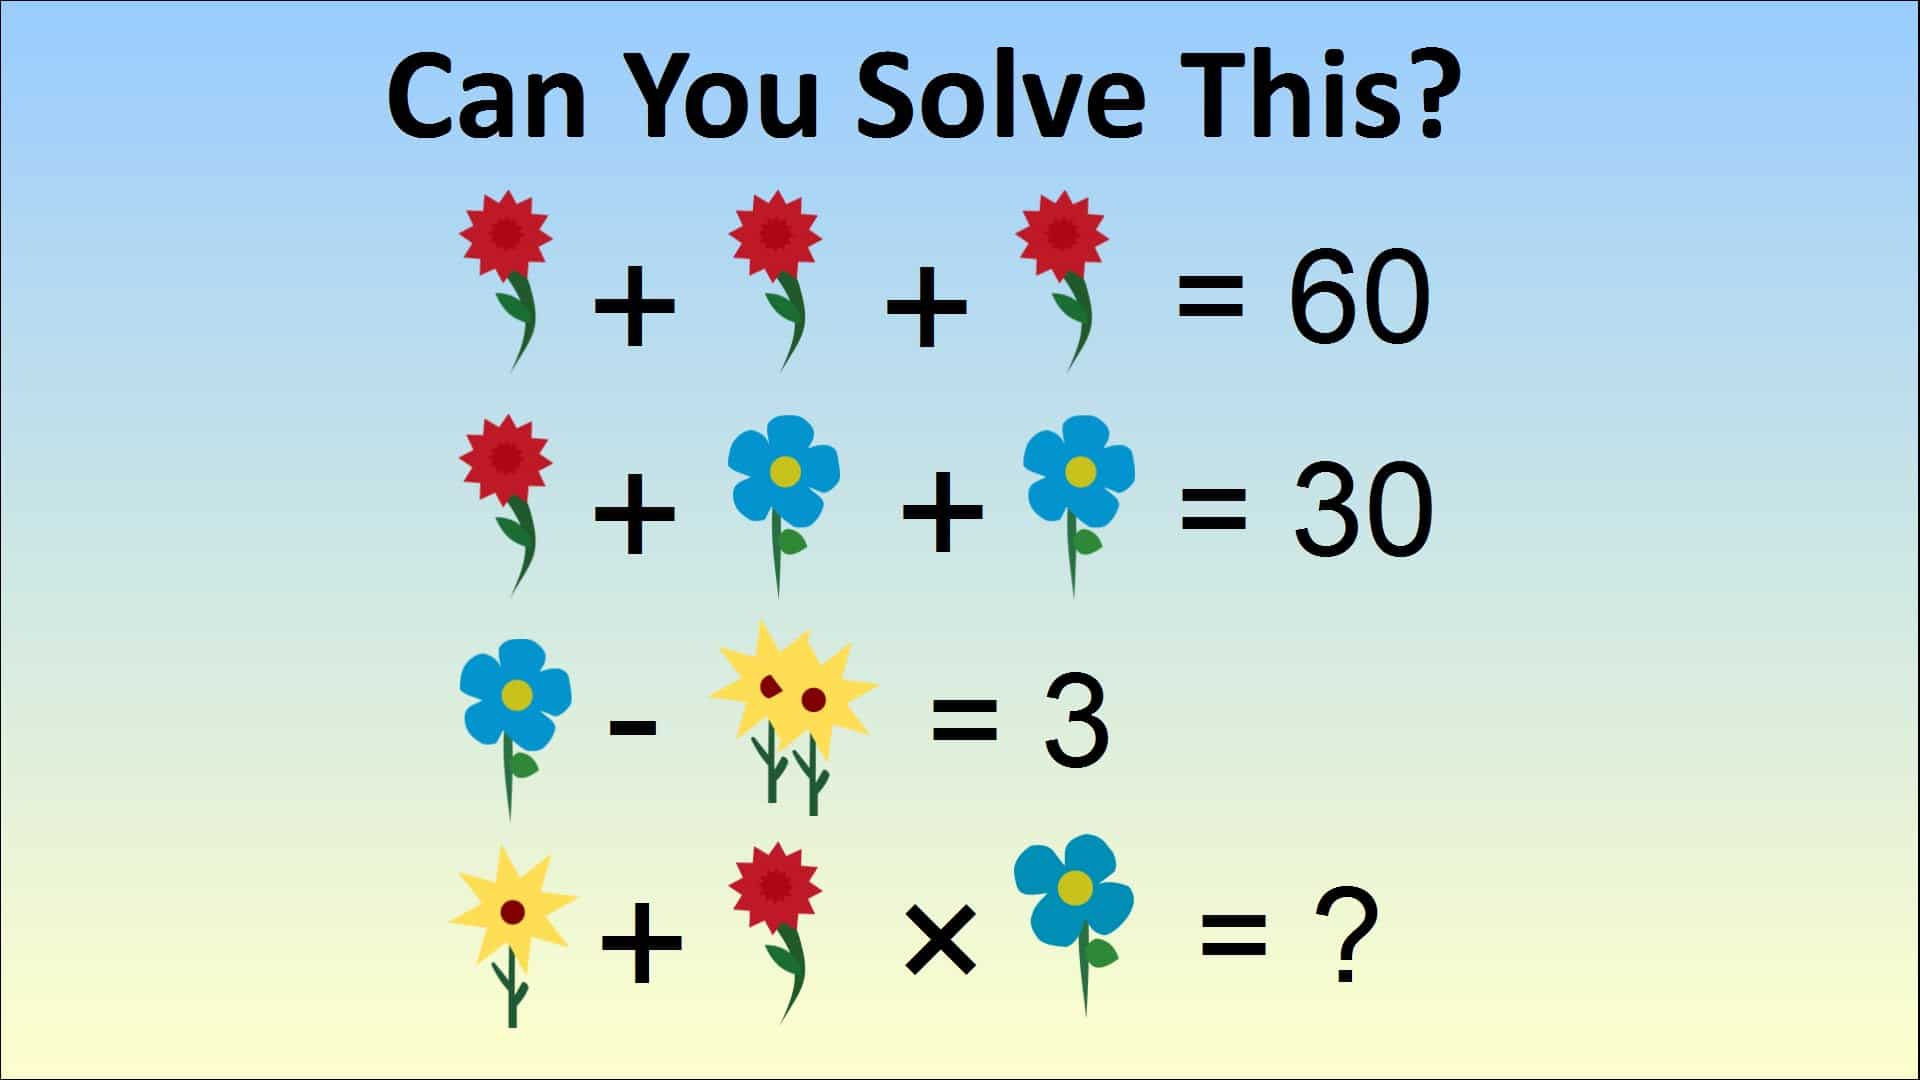 Flower Math Problems For Kids The Adding Game